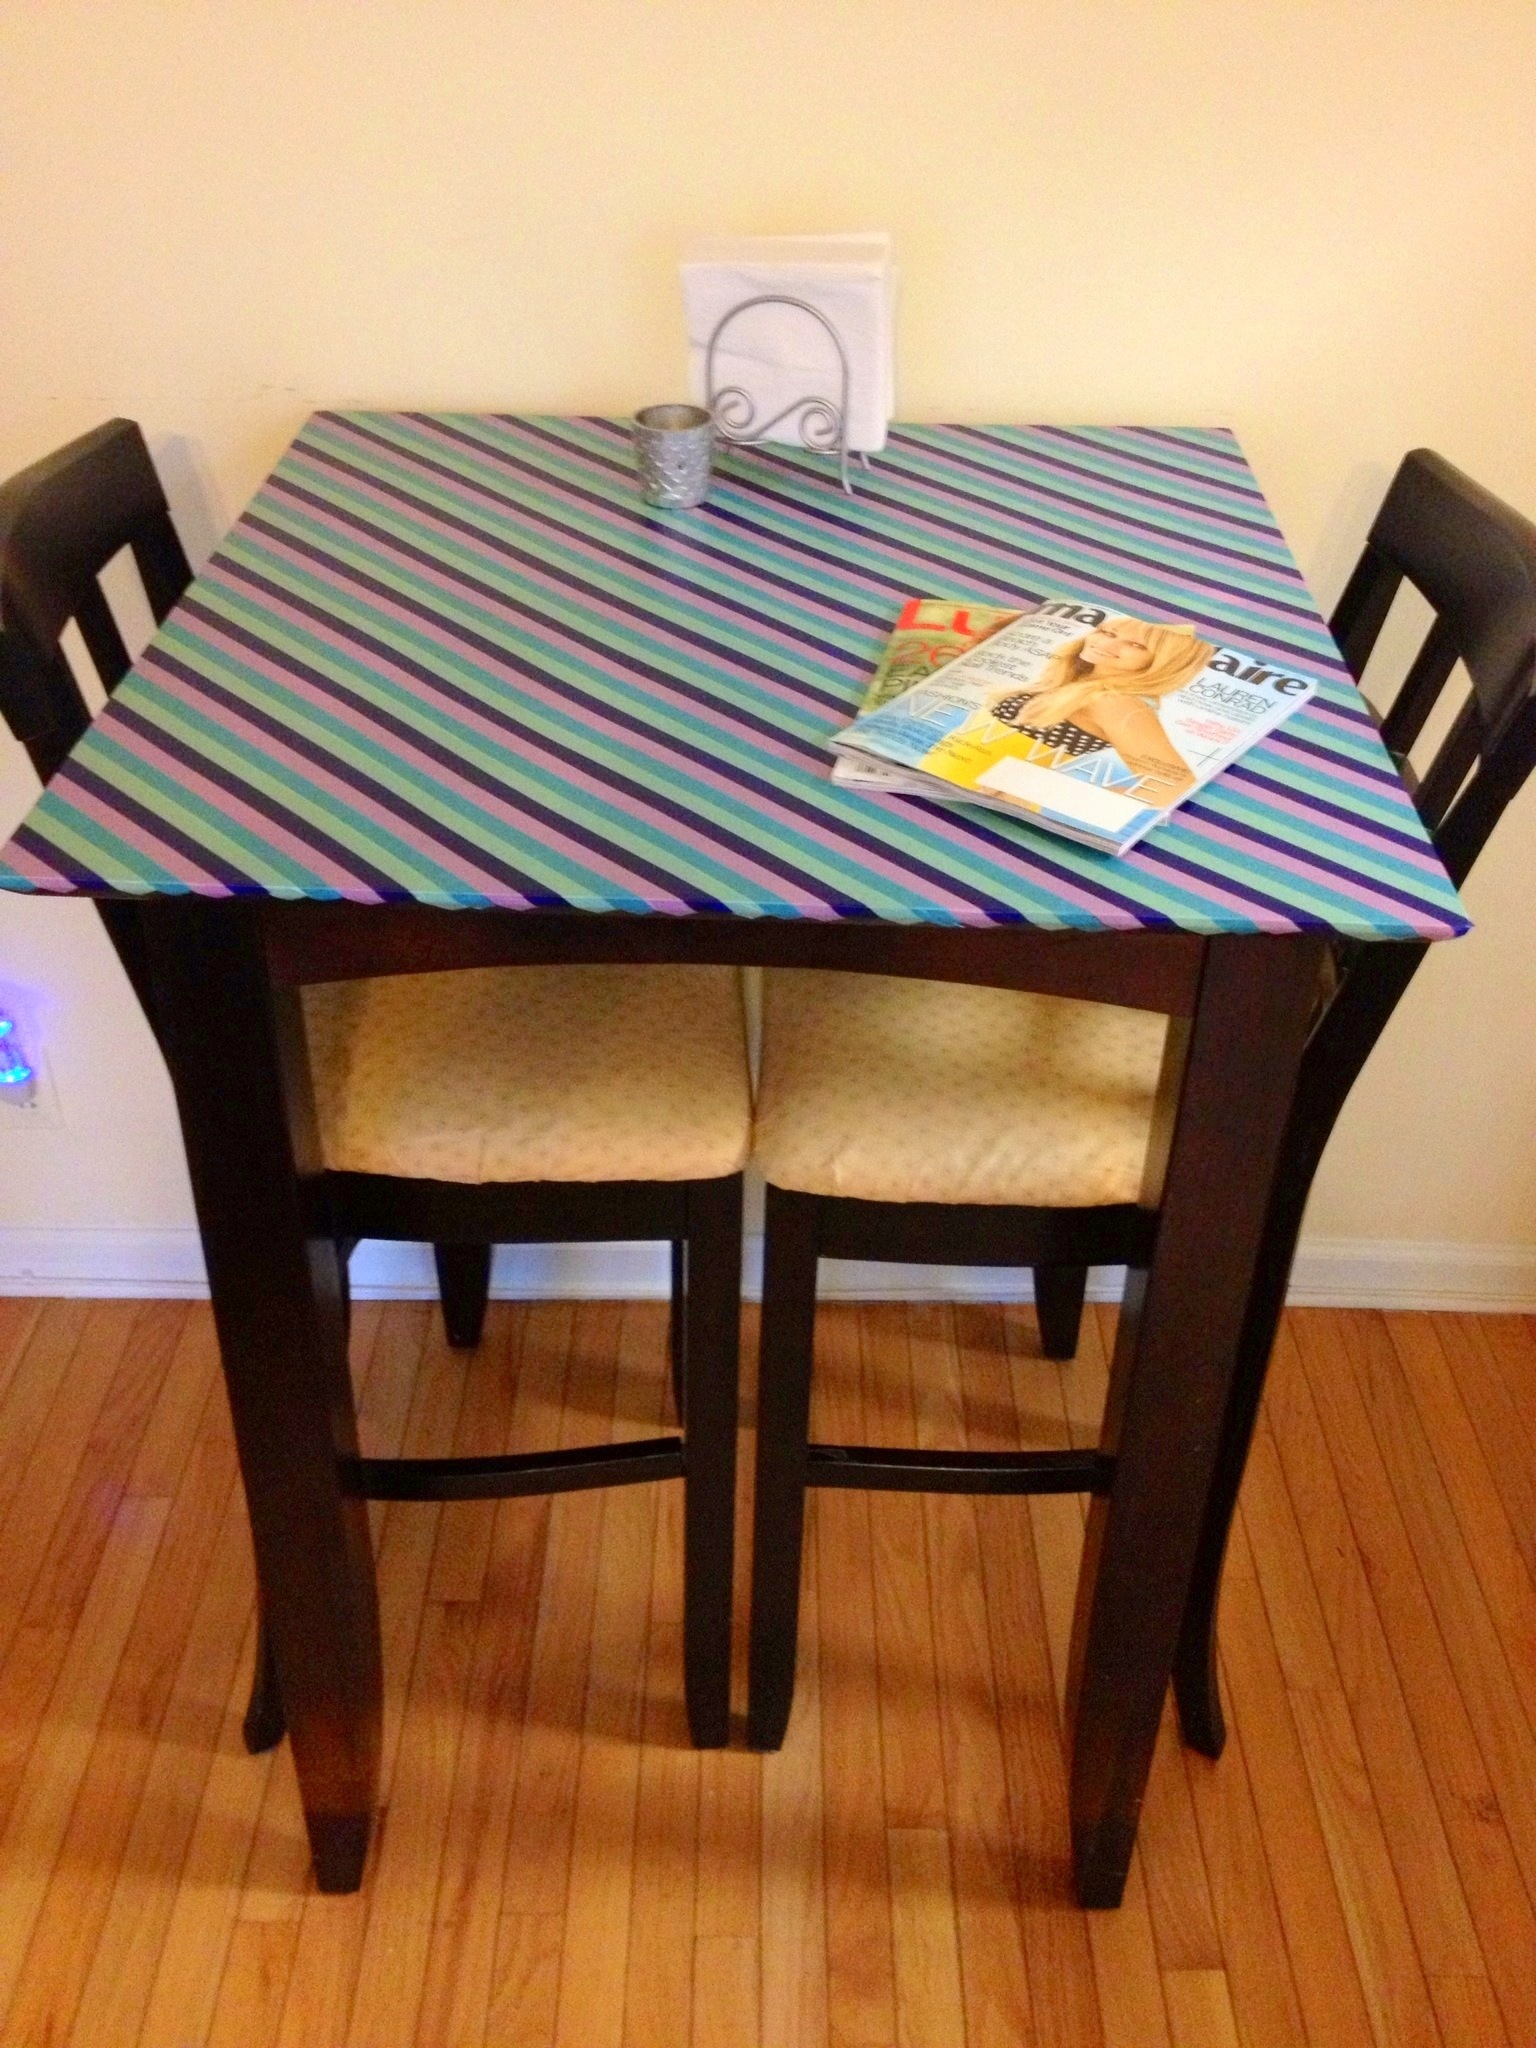 diy japanese paper washi tape table top her philly. Black Bedroom Furniture Sets. Home Design Ideas